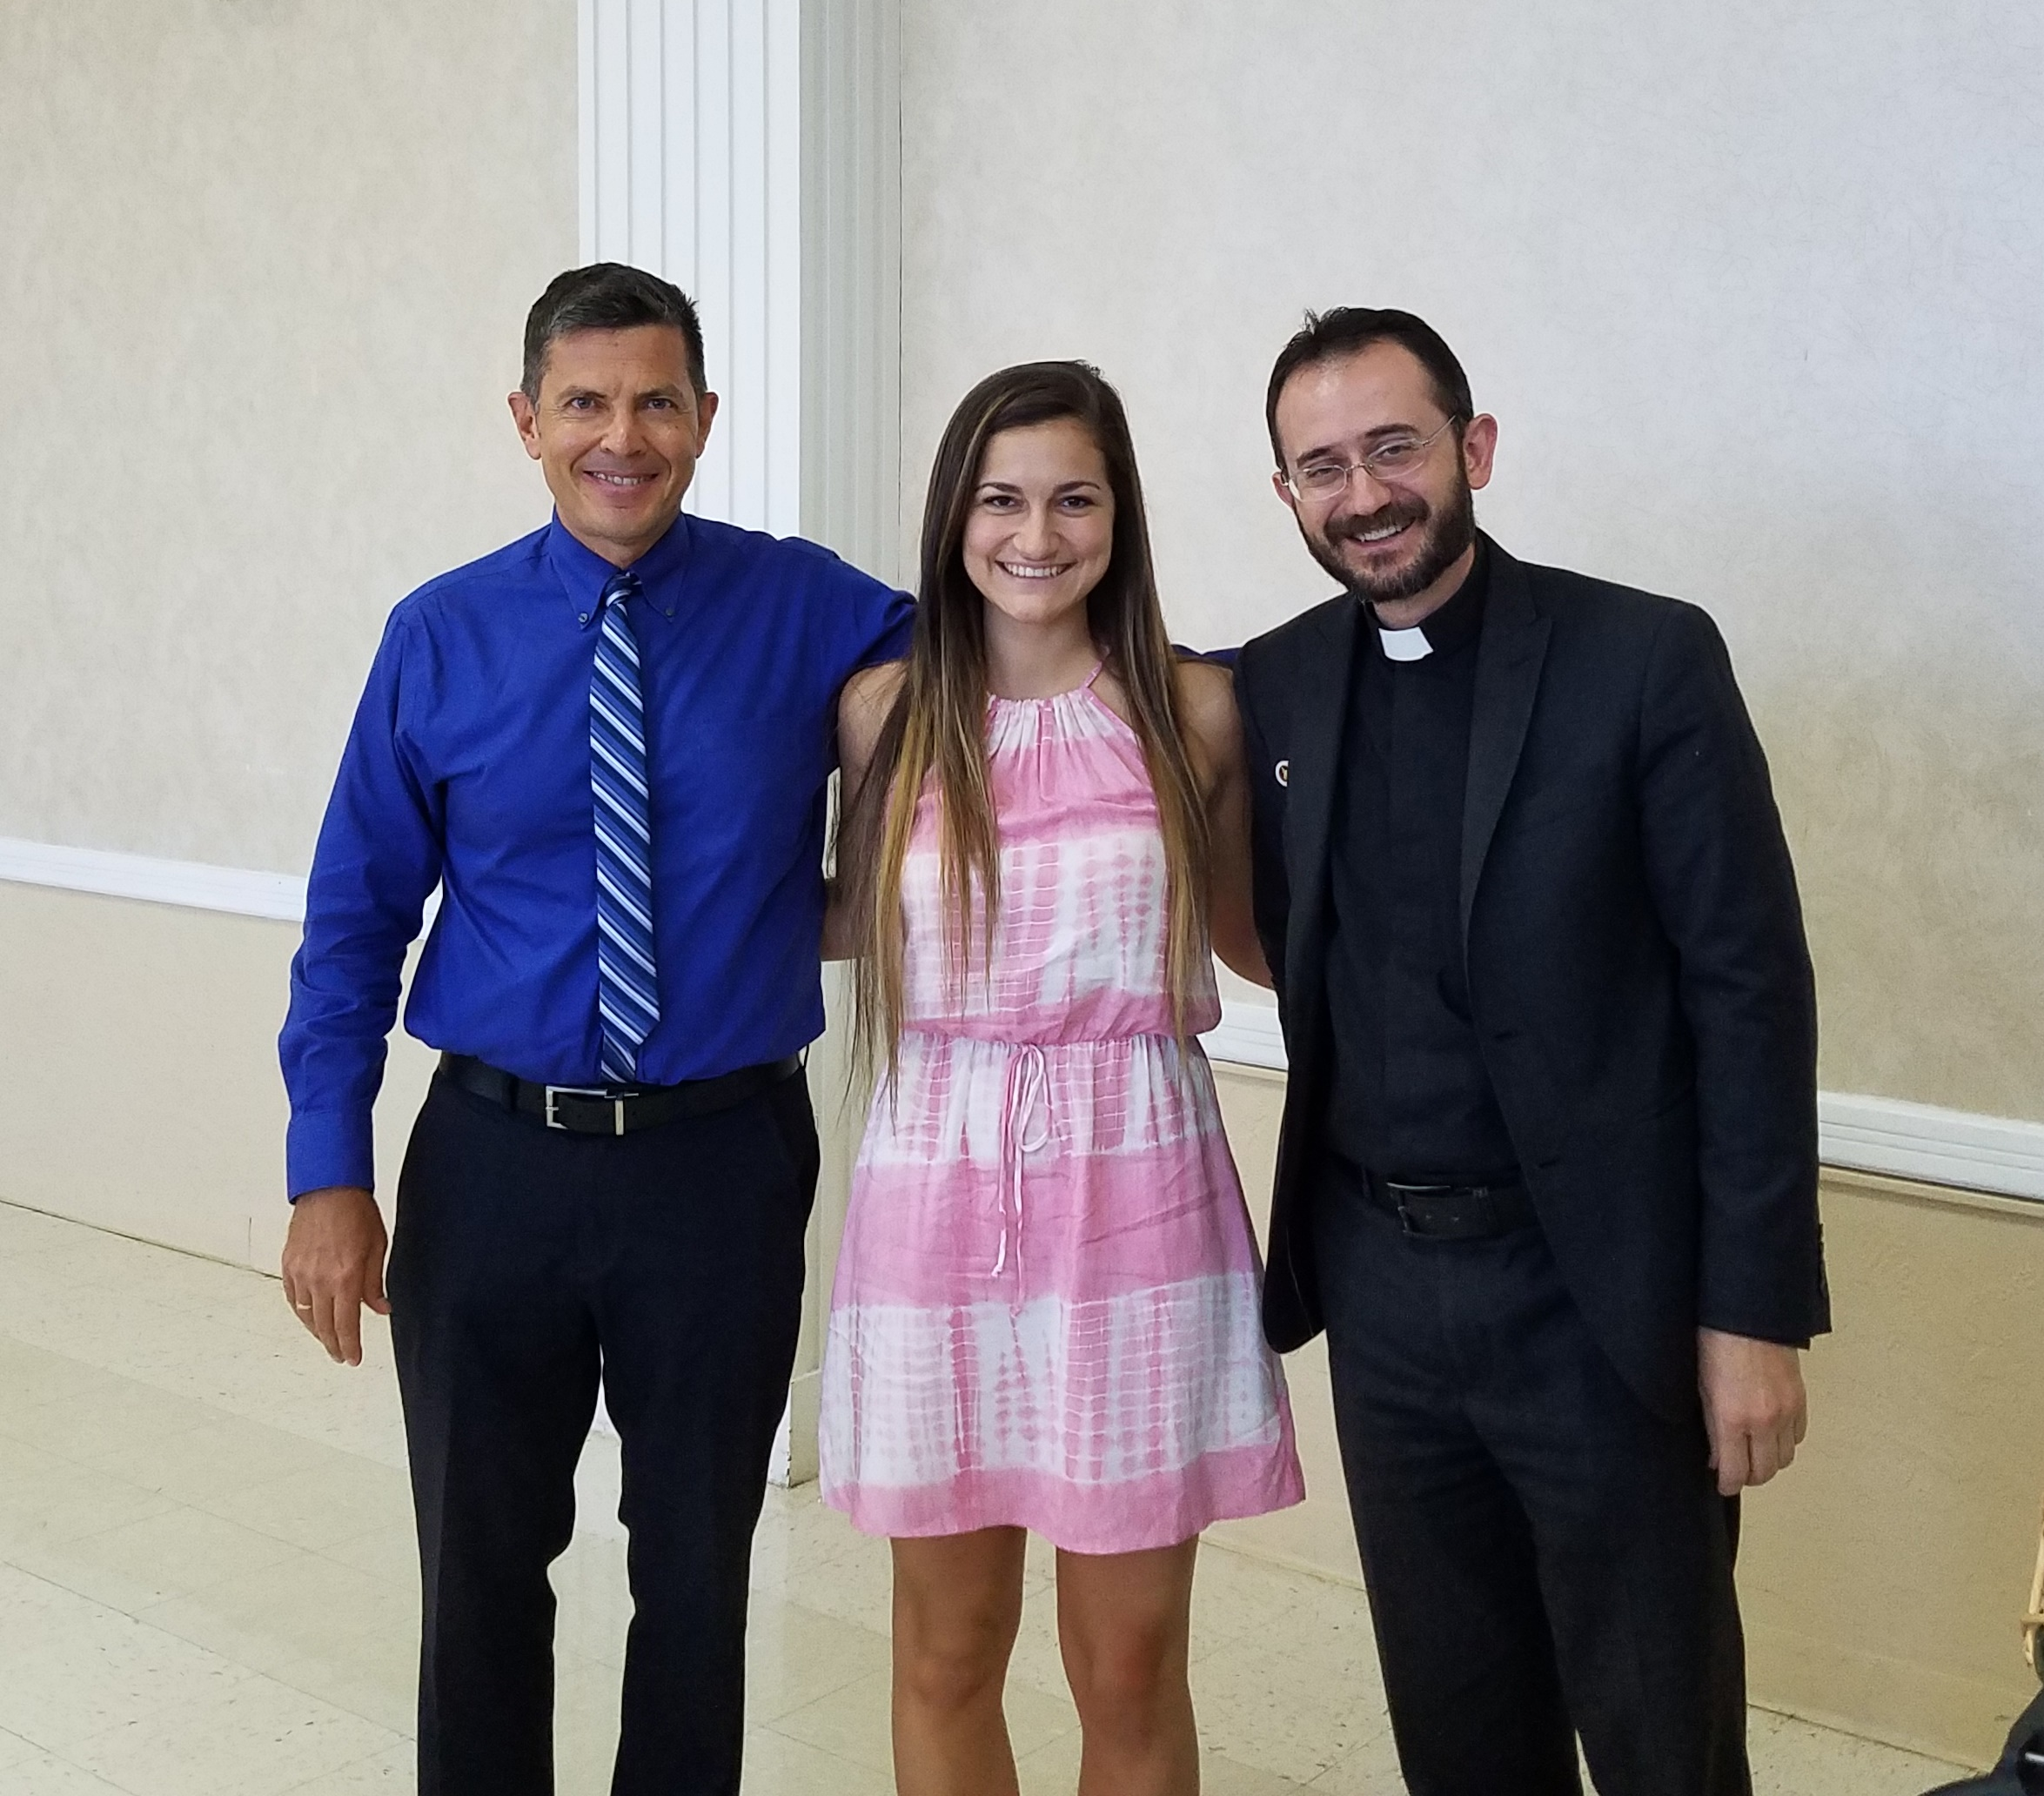 Georgia Paspalakis - 2017 AHEPA Housing Scholarship